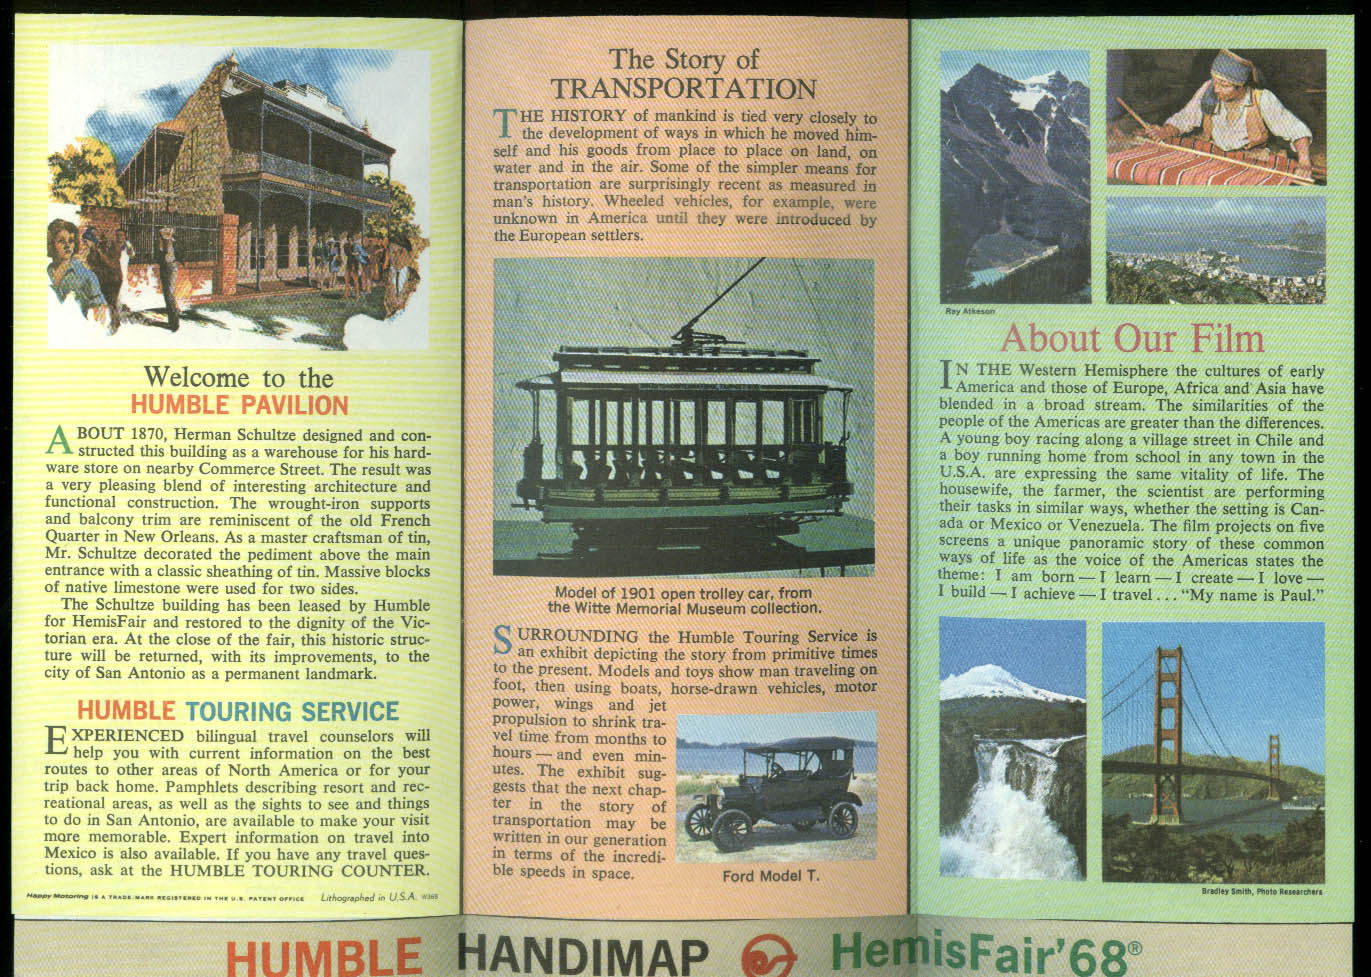 Image for HemisFair '68 Guide to the Enco Humble Pavilion & Map of the Fair 1968